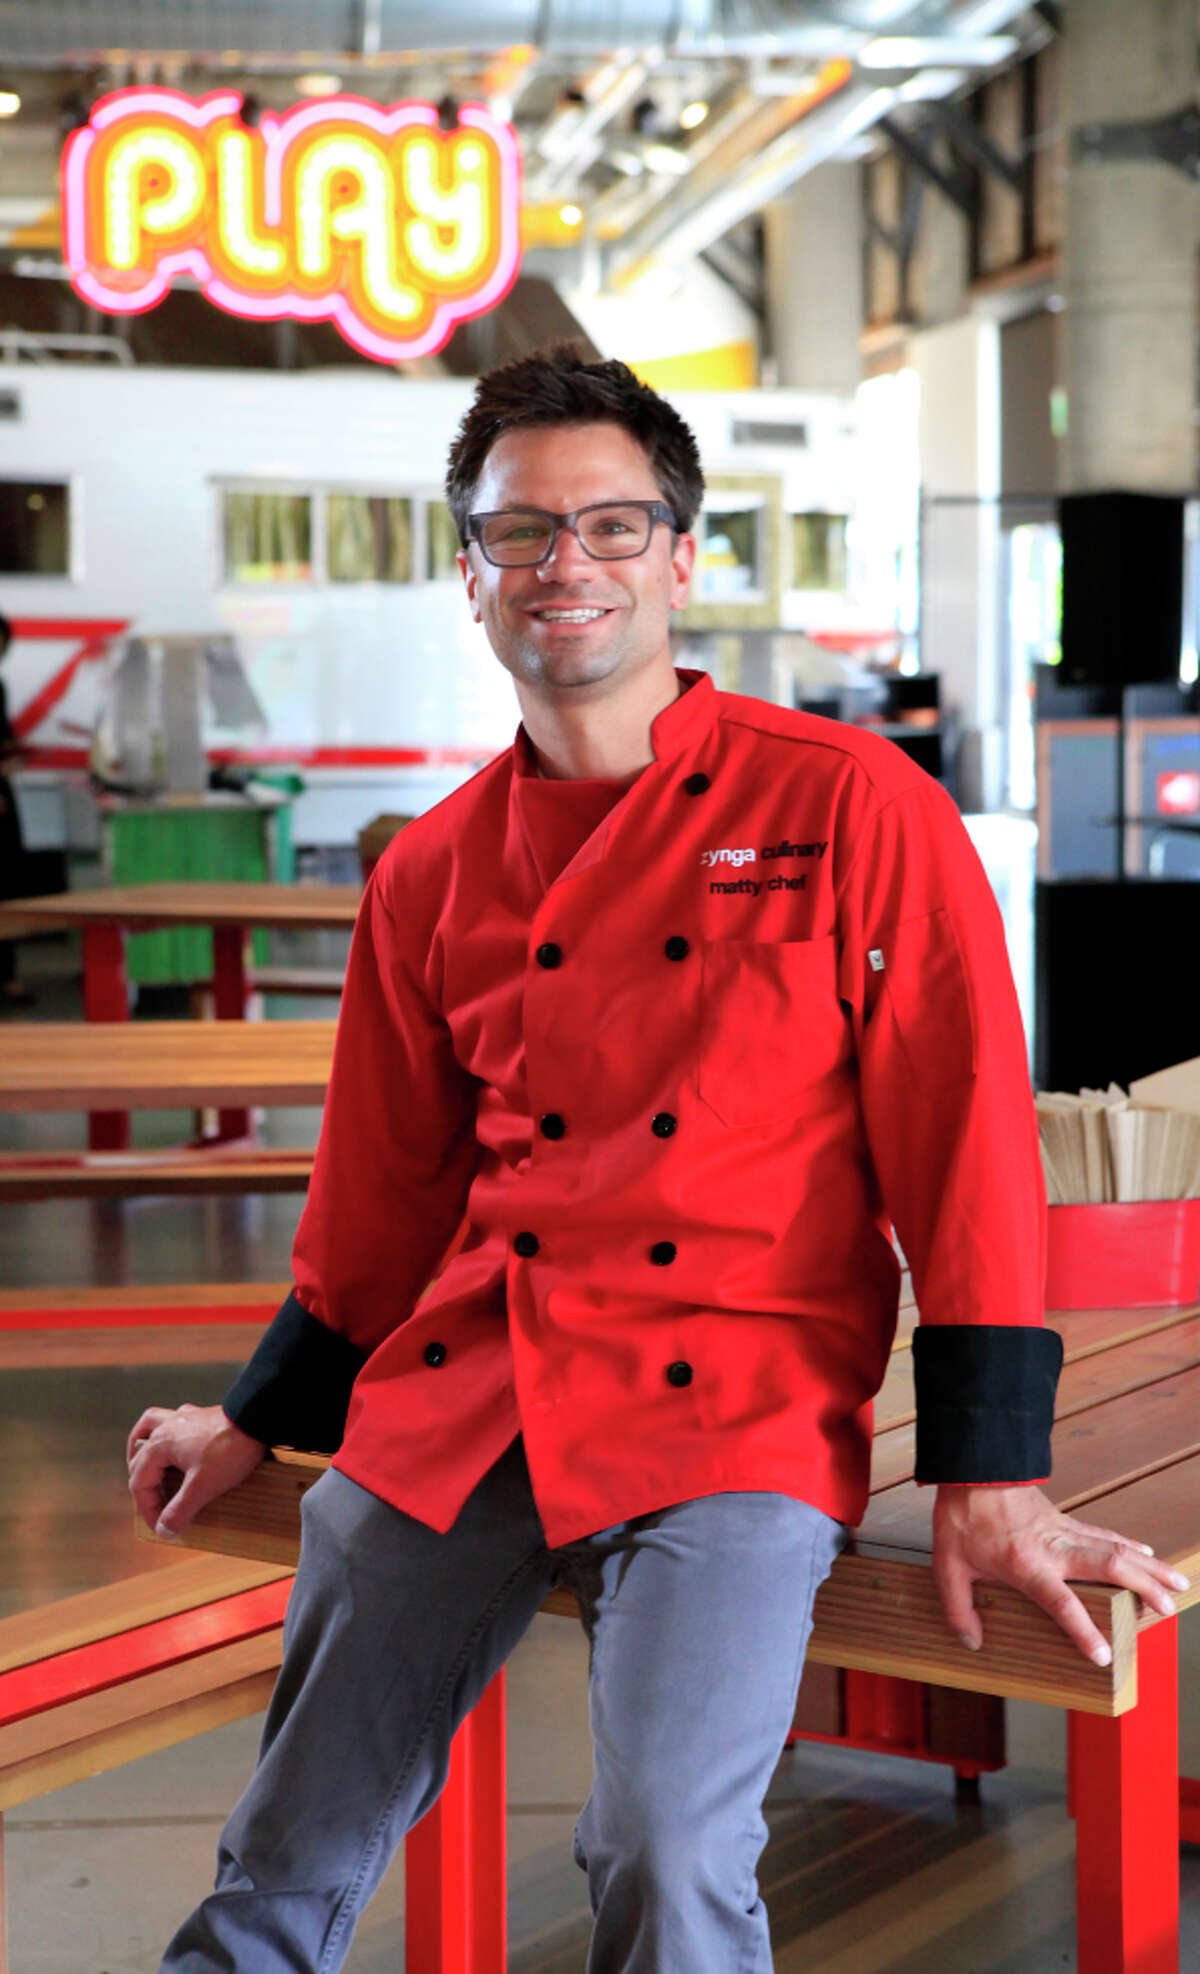 Executive chef Matthew DuTrumble, who says Zynga's games inspire the staff, believes in team building for all.